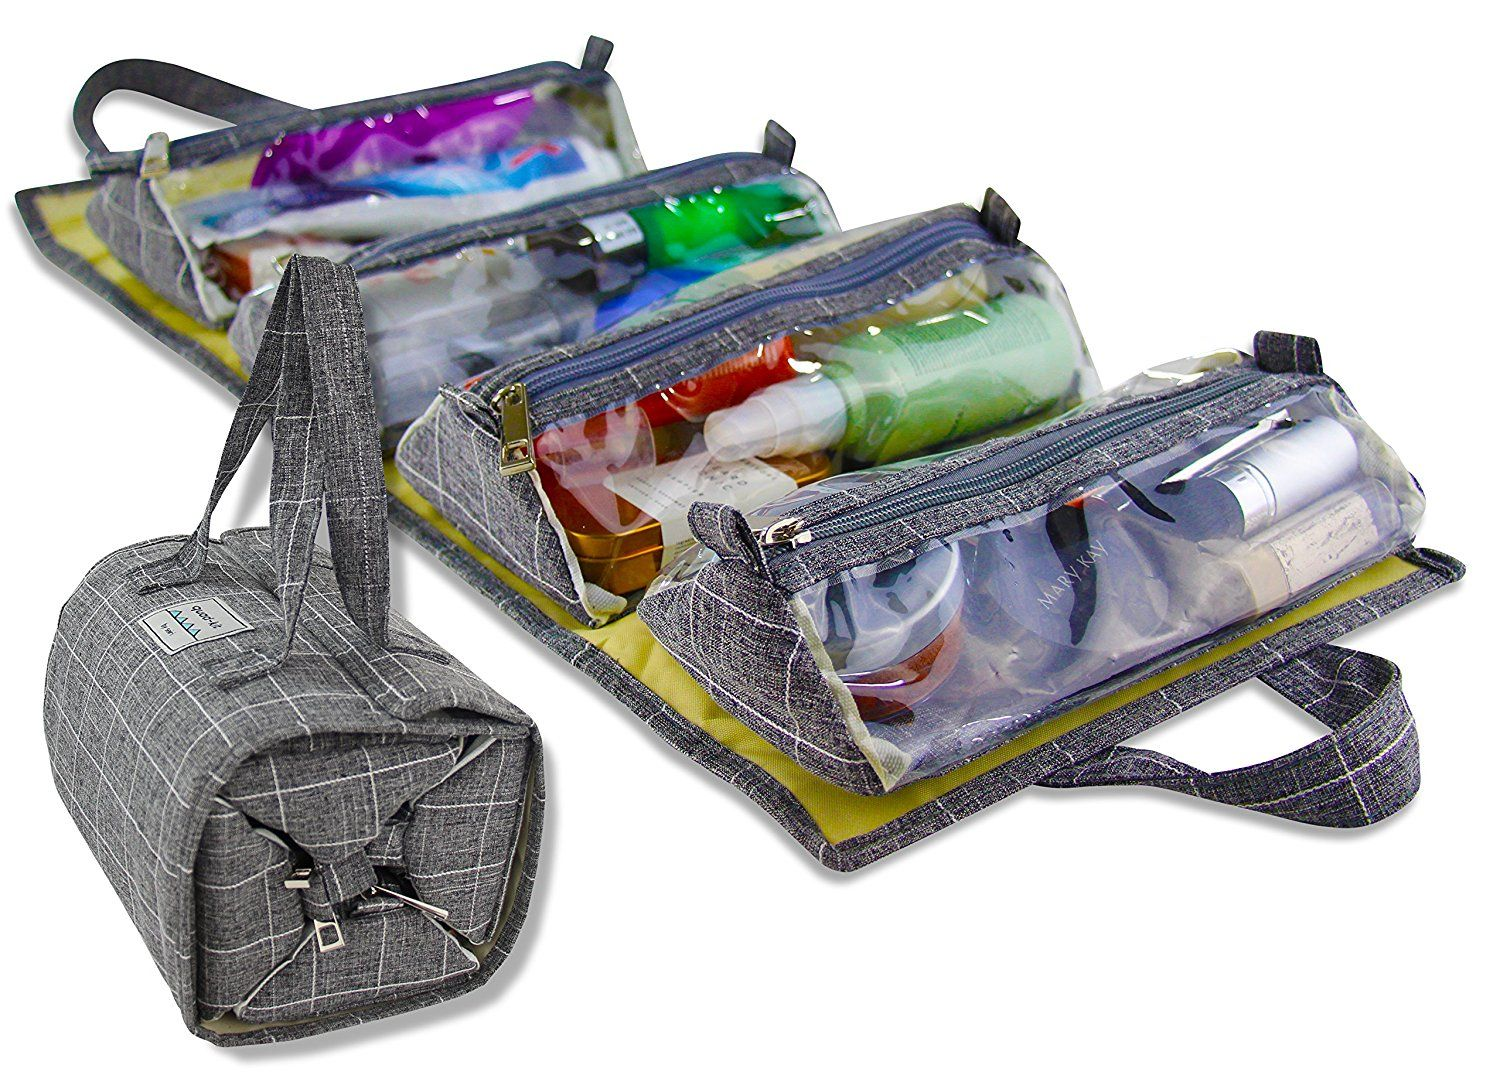 Amazon.com  Hanging Roll-Up Make Up Organizer and Travel Bag - 4 Removable Toiletry  Bags - Great for Cosmetics 4fd3c6095d0a2